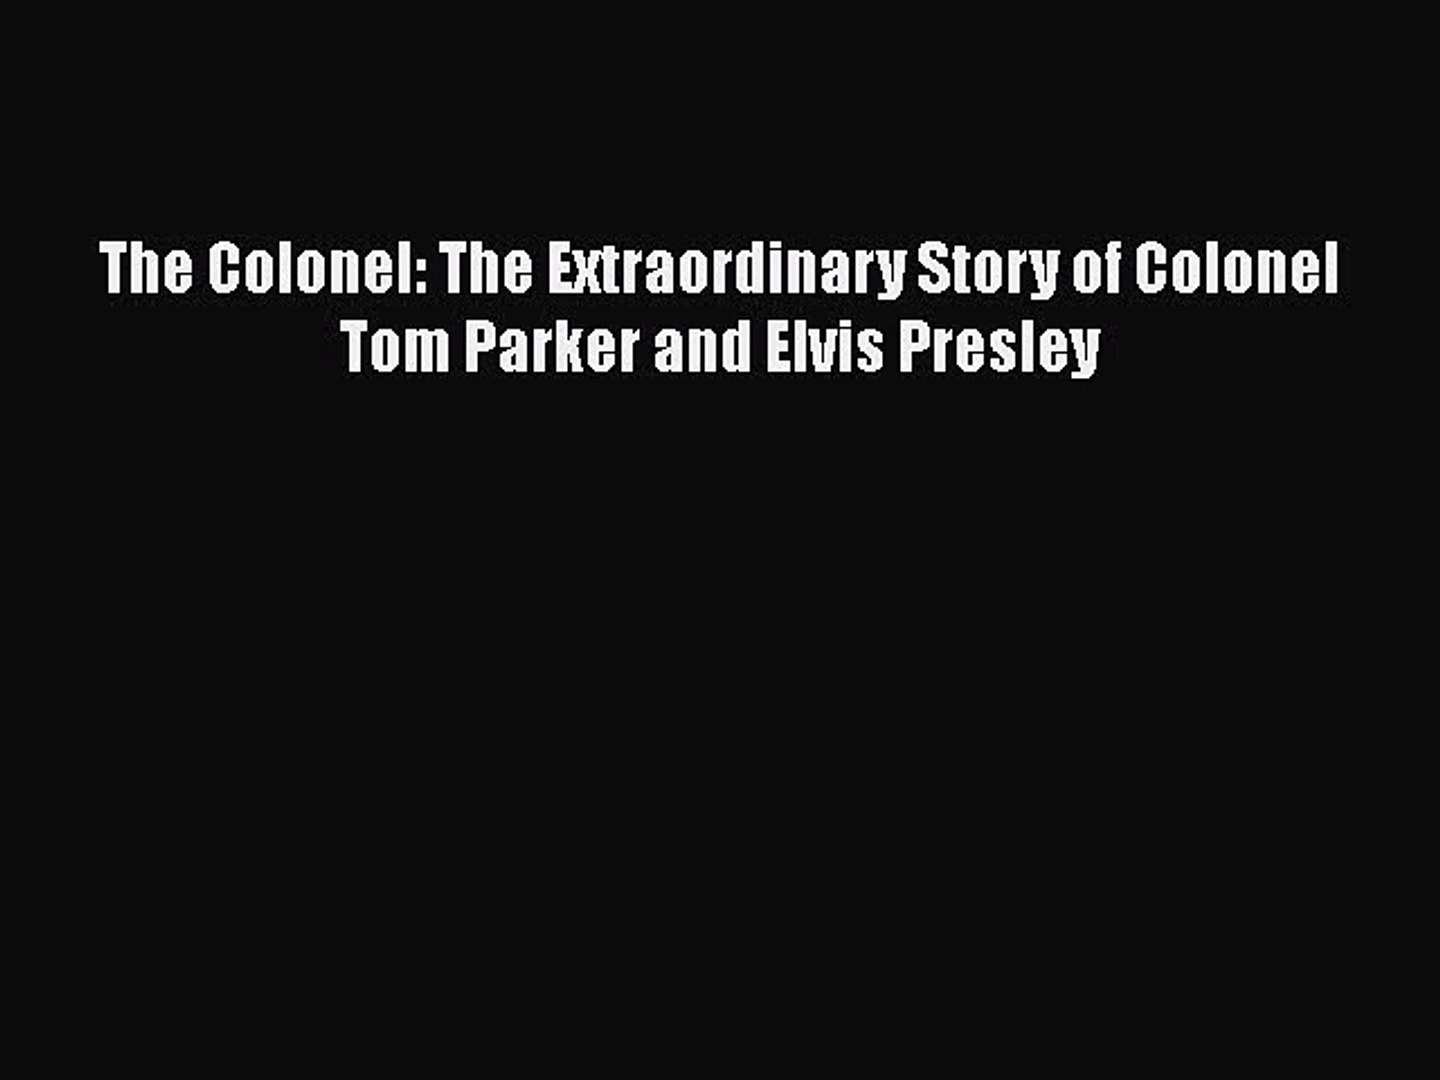 [Online PDF] The Colonel: The Extraordinary Story of Colonel Tom Parker and Elvis Presley Free